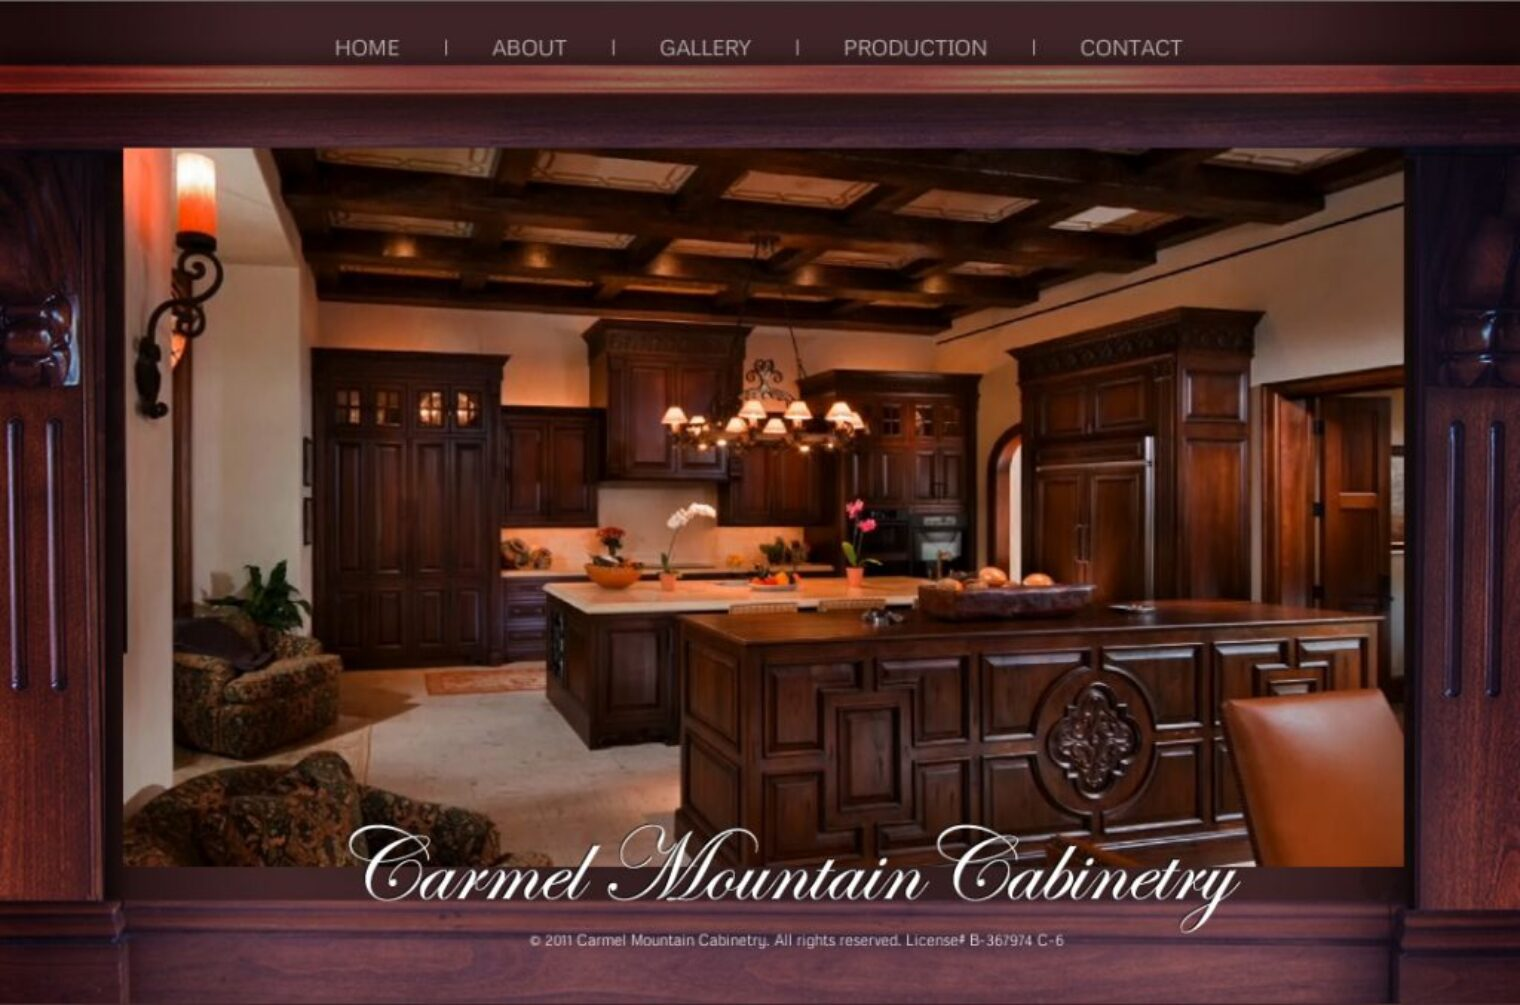 Carmel Mountain Cabinetry